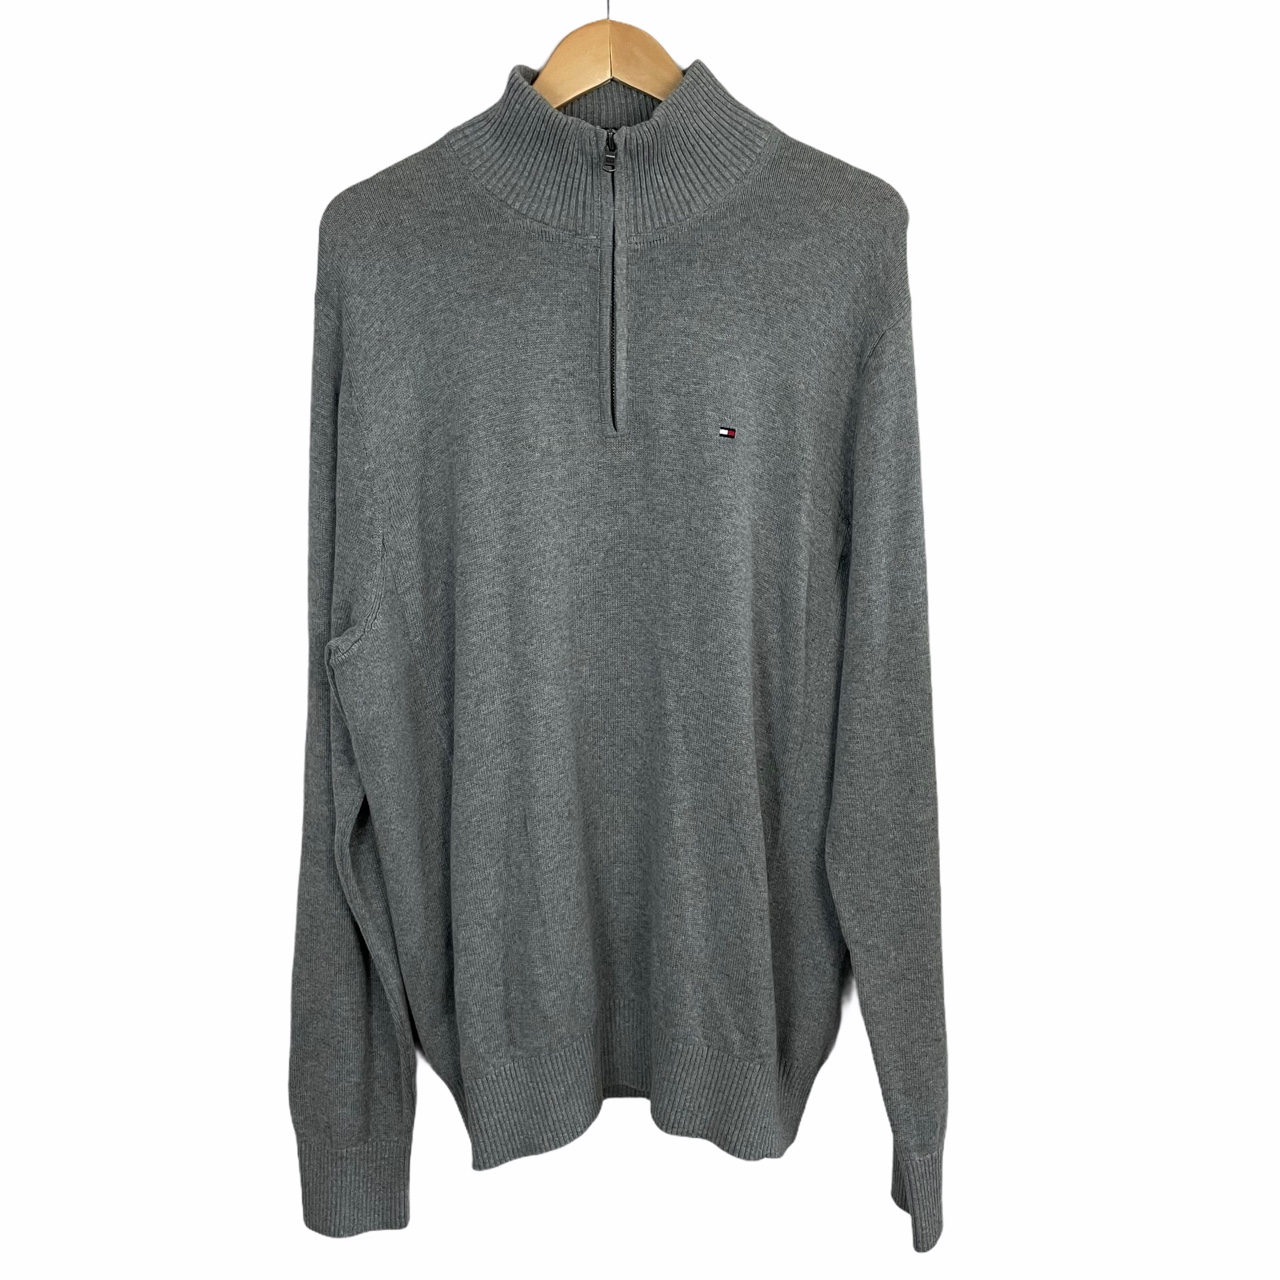 Product Image 1 - Tommy Hilfiger Quarter Zip Sweater •